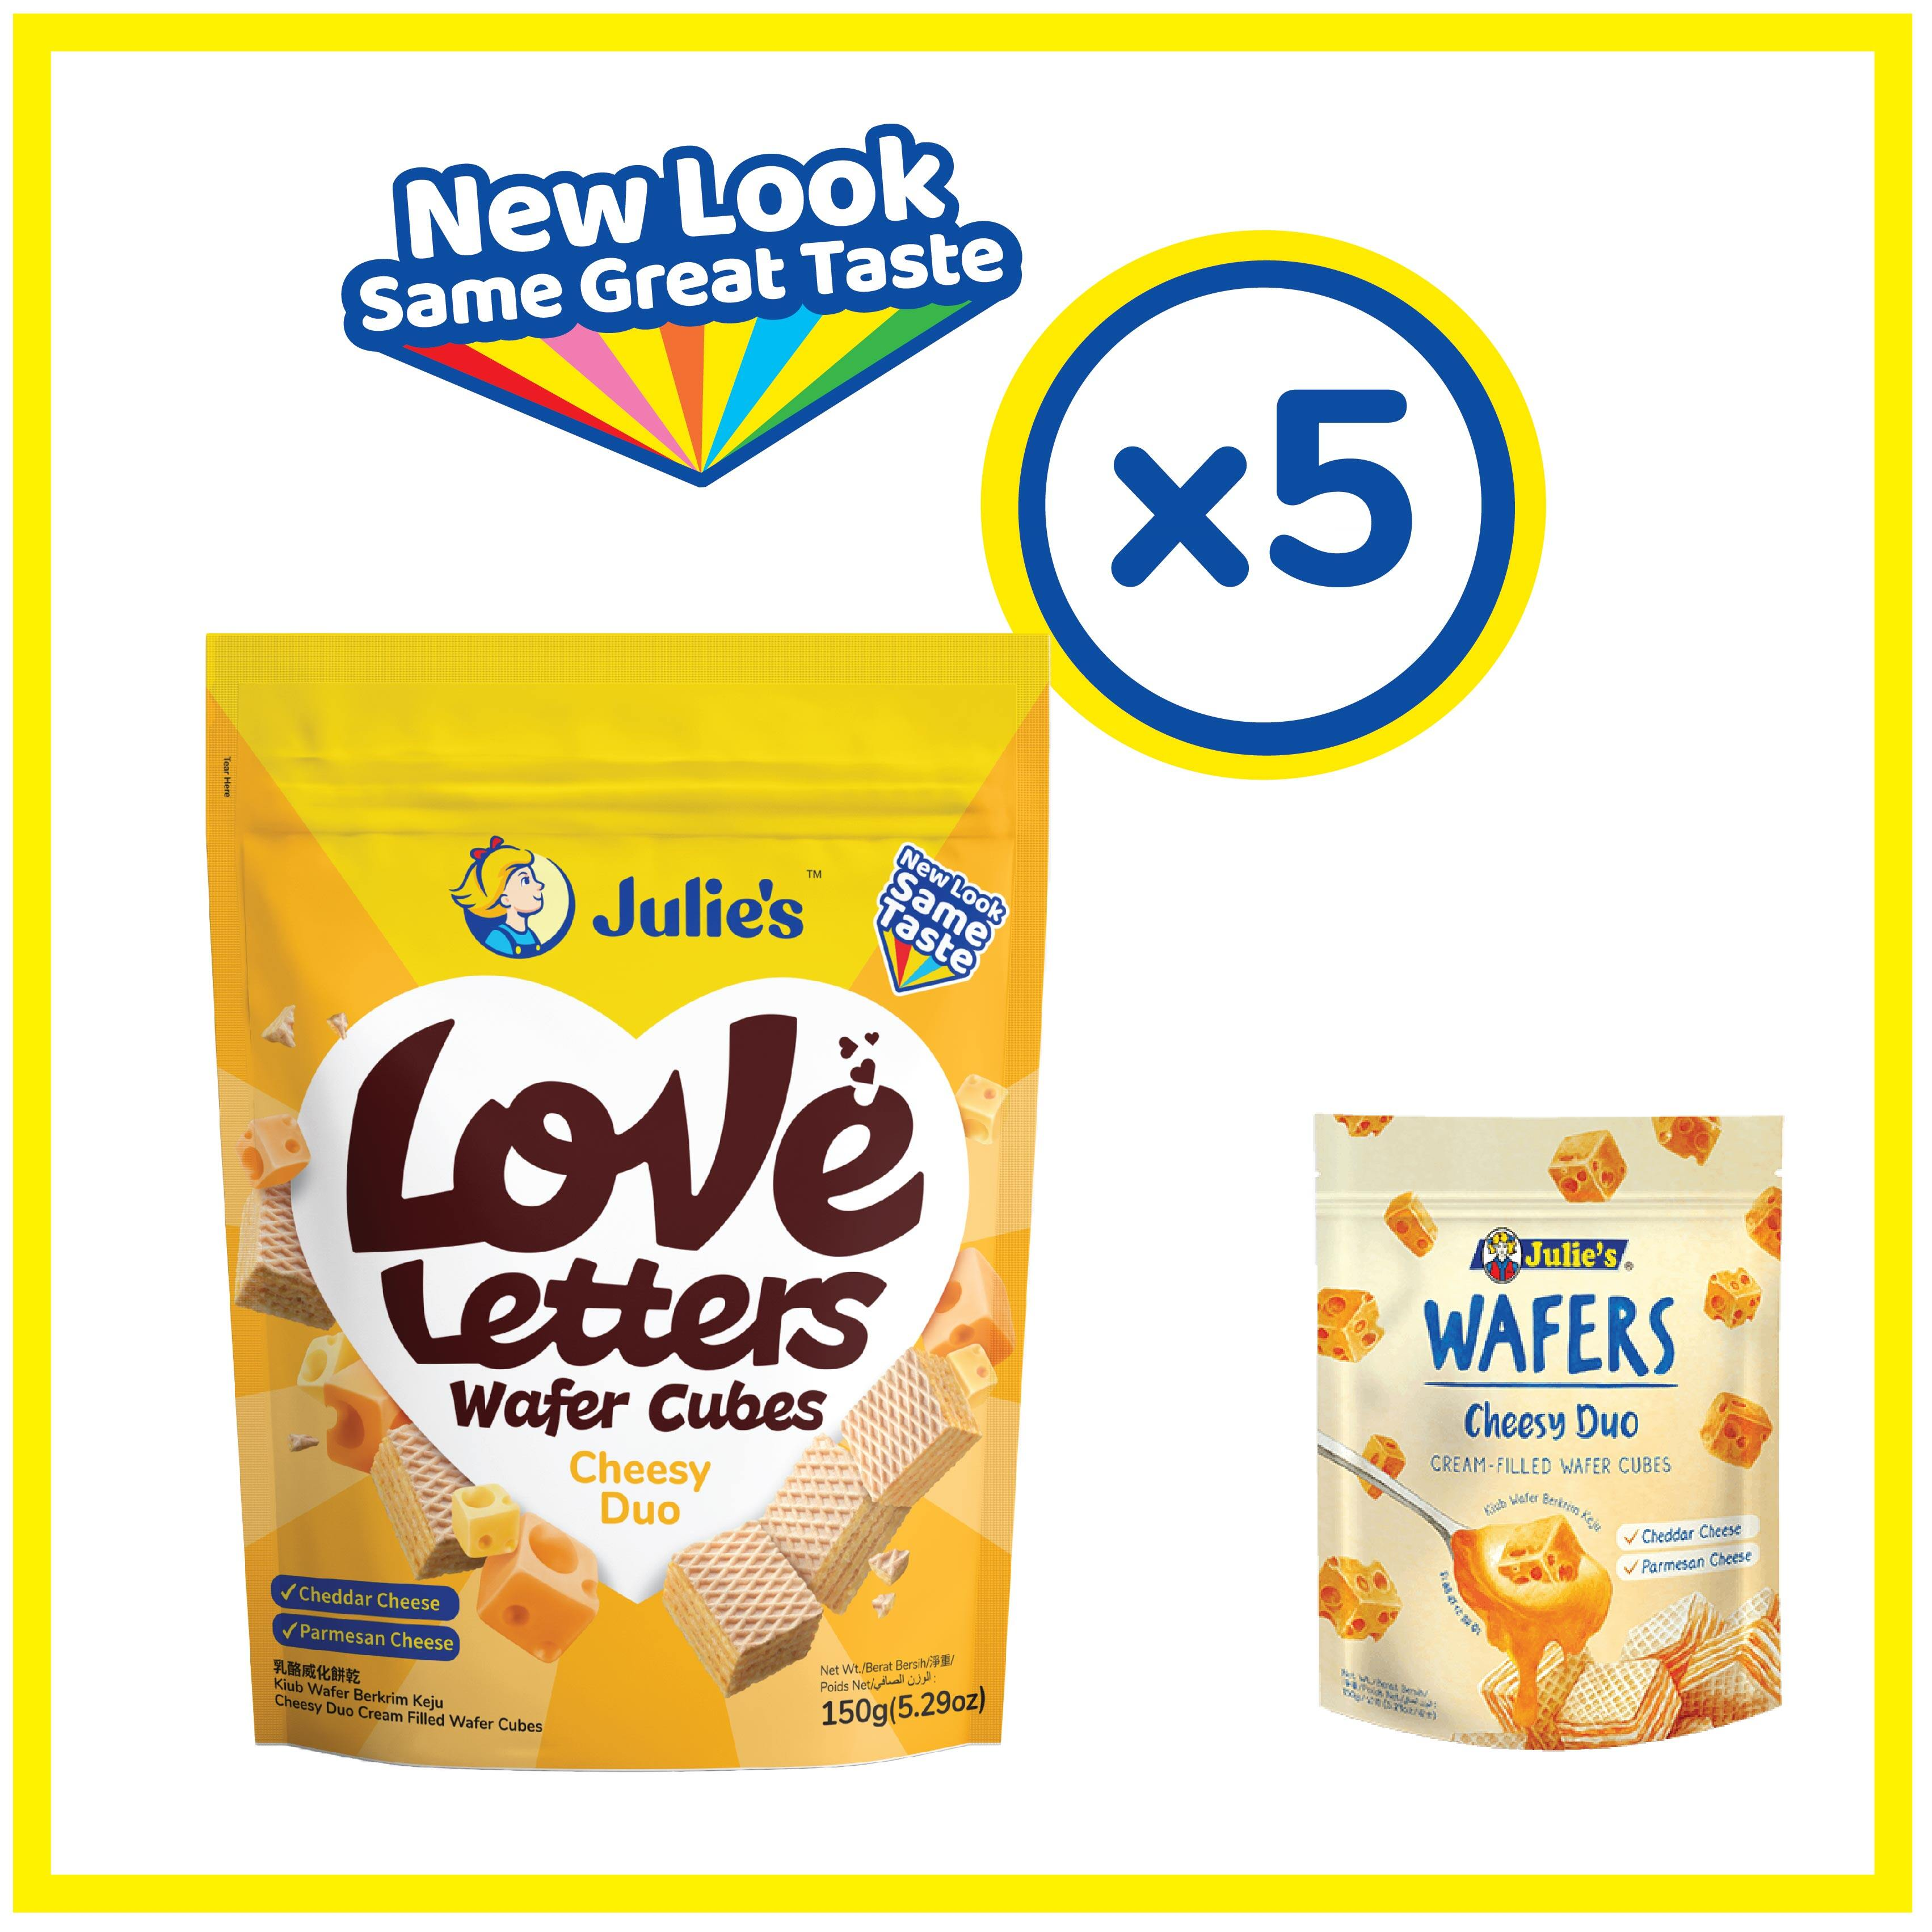 Julie's Love Letters Wafers Cheesy Duo 150g x 5 pack